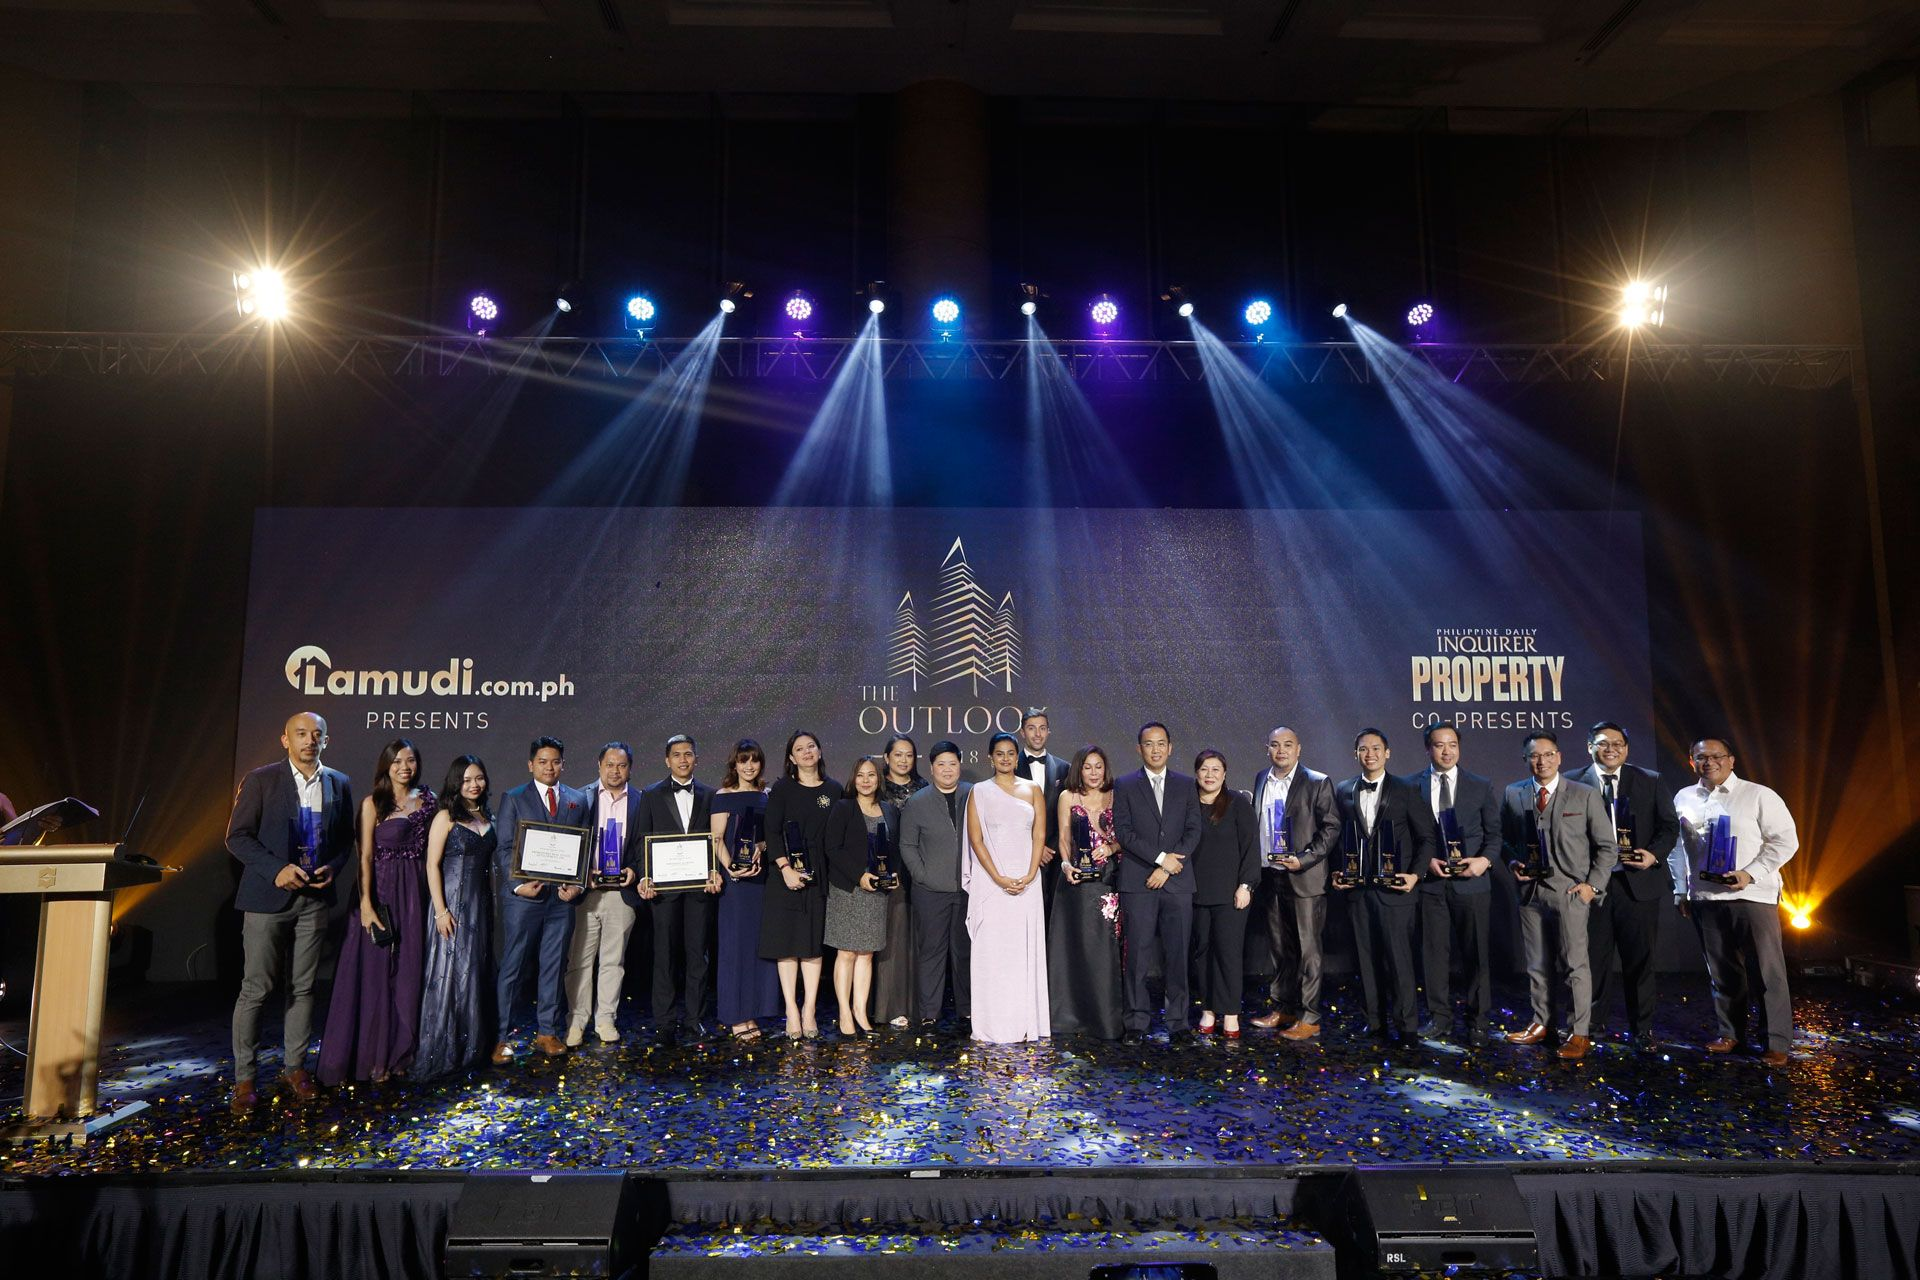 Top Real Estate awarded at The Outlook 2018 Awards Gala